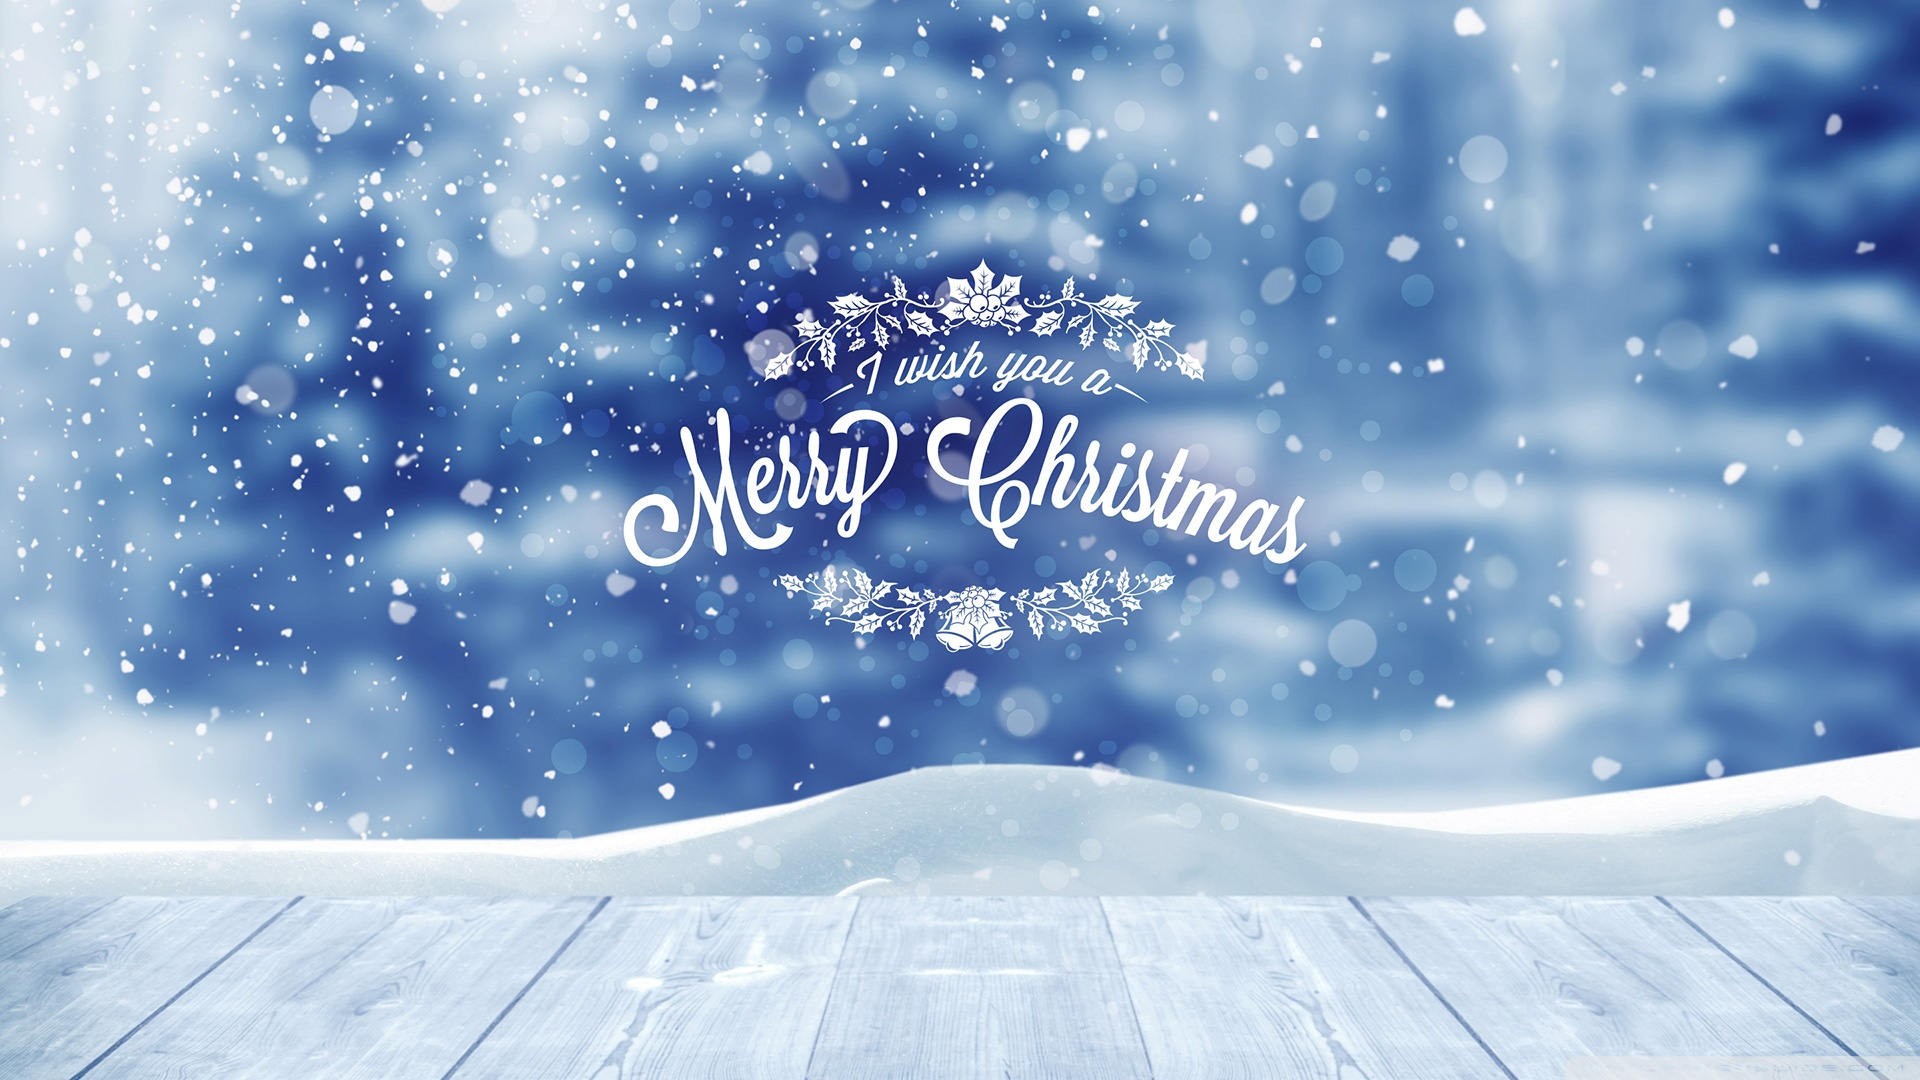 i wish you a merry christmas by pimpyourscreen wallpaper 1920x1080